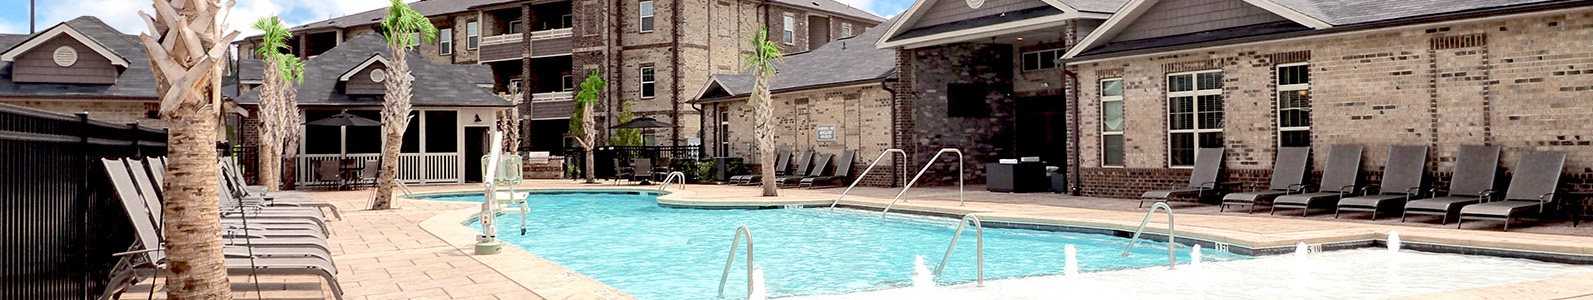 Pool Side Relaxing Area at Amberton at Stonewater, Cary, NC, 27519